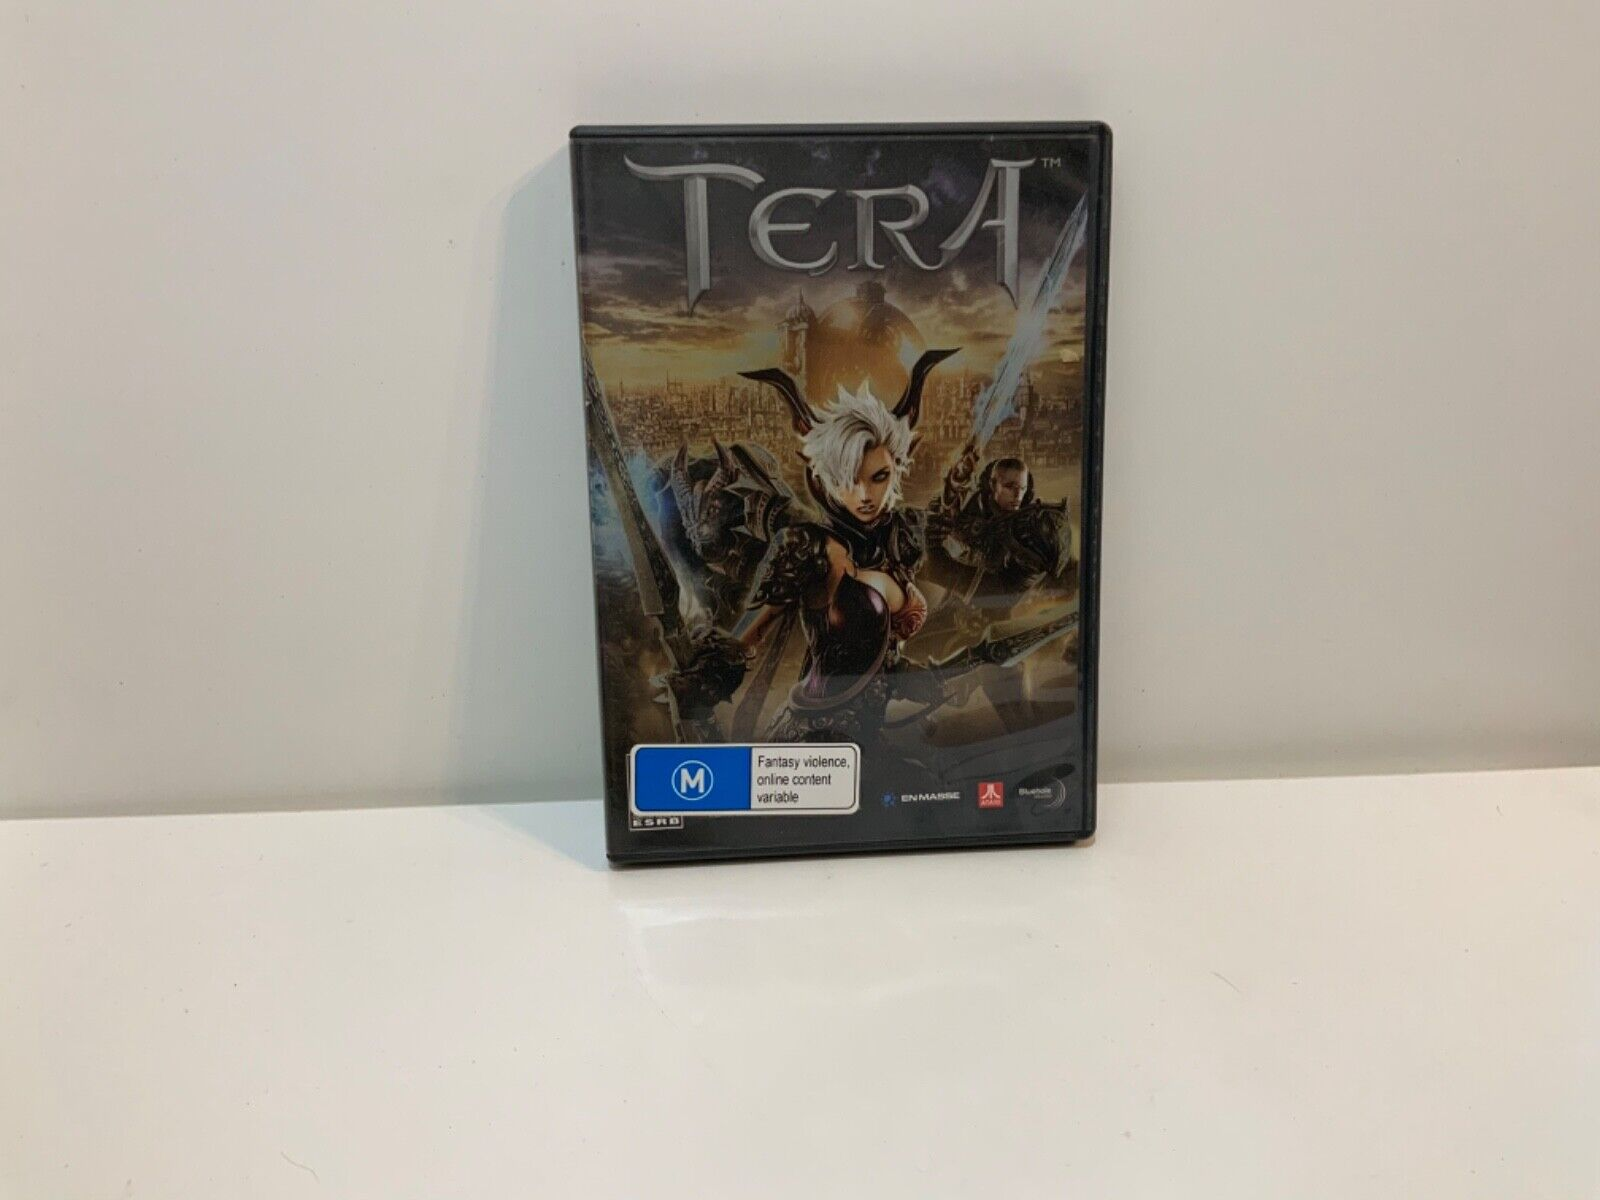 game computer - Tera - PC DVD CD Computer Game - Free Postage!